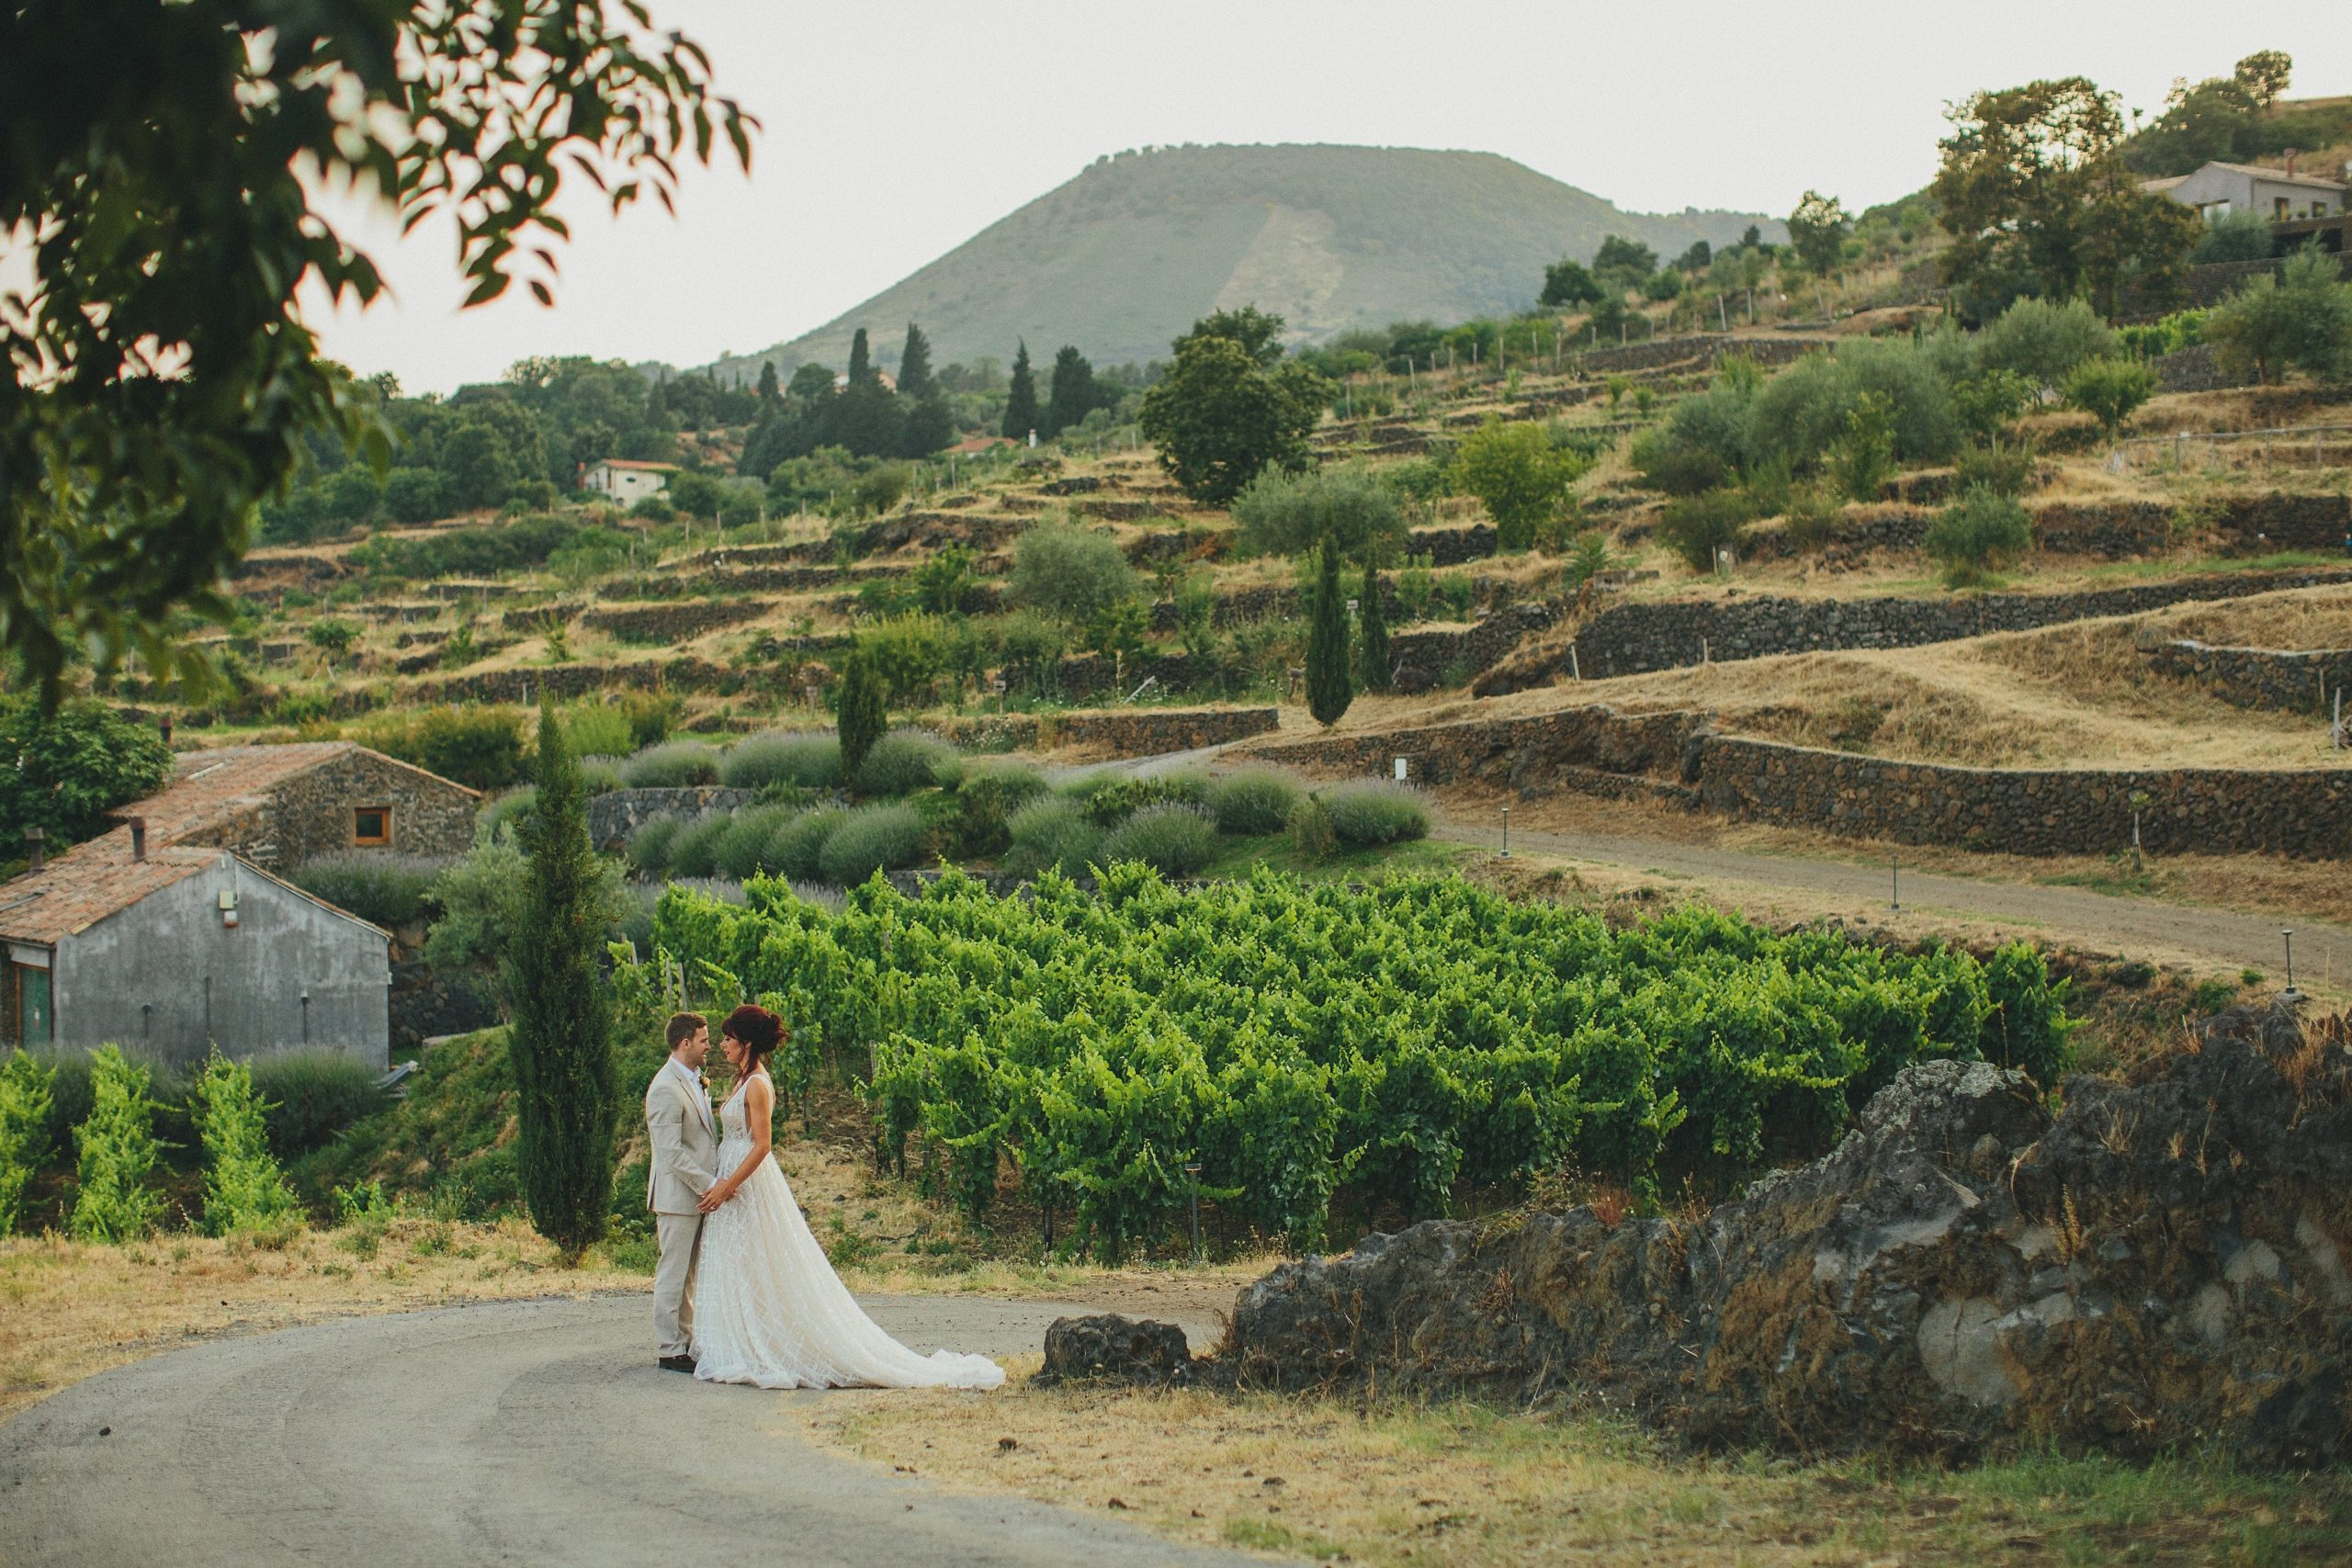 Cupid's Journey of Love Around The World - Part 3: A Countryside Destination Wedding